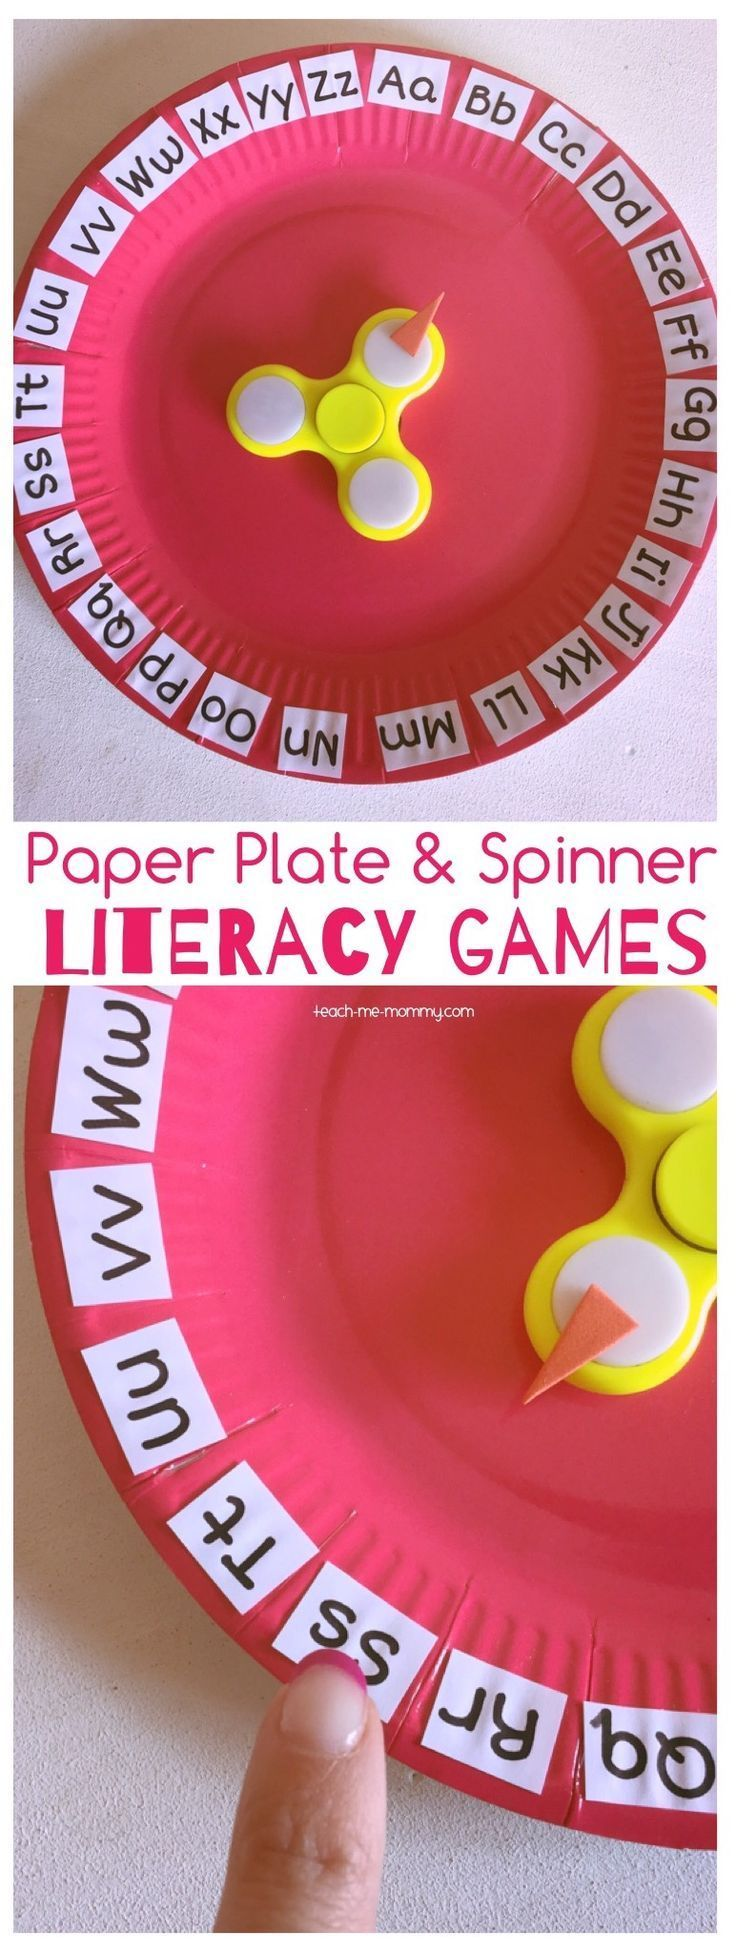 Paper Plate & Spinner Literacy Games